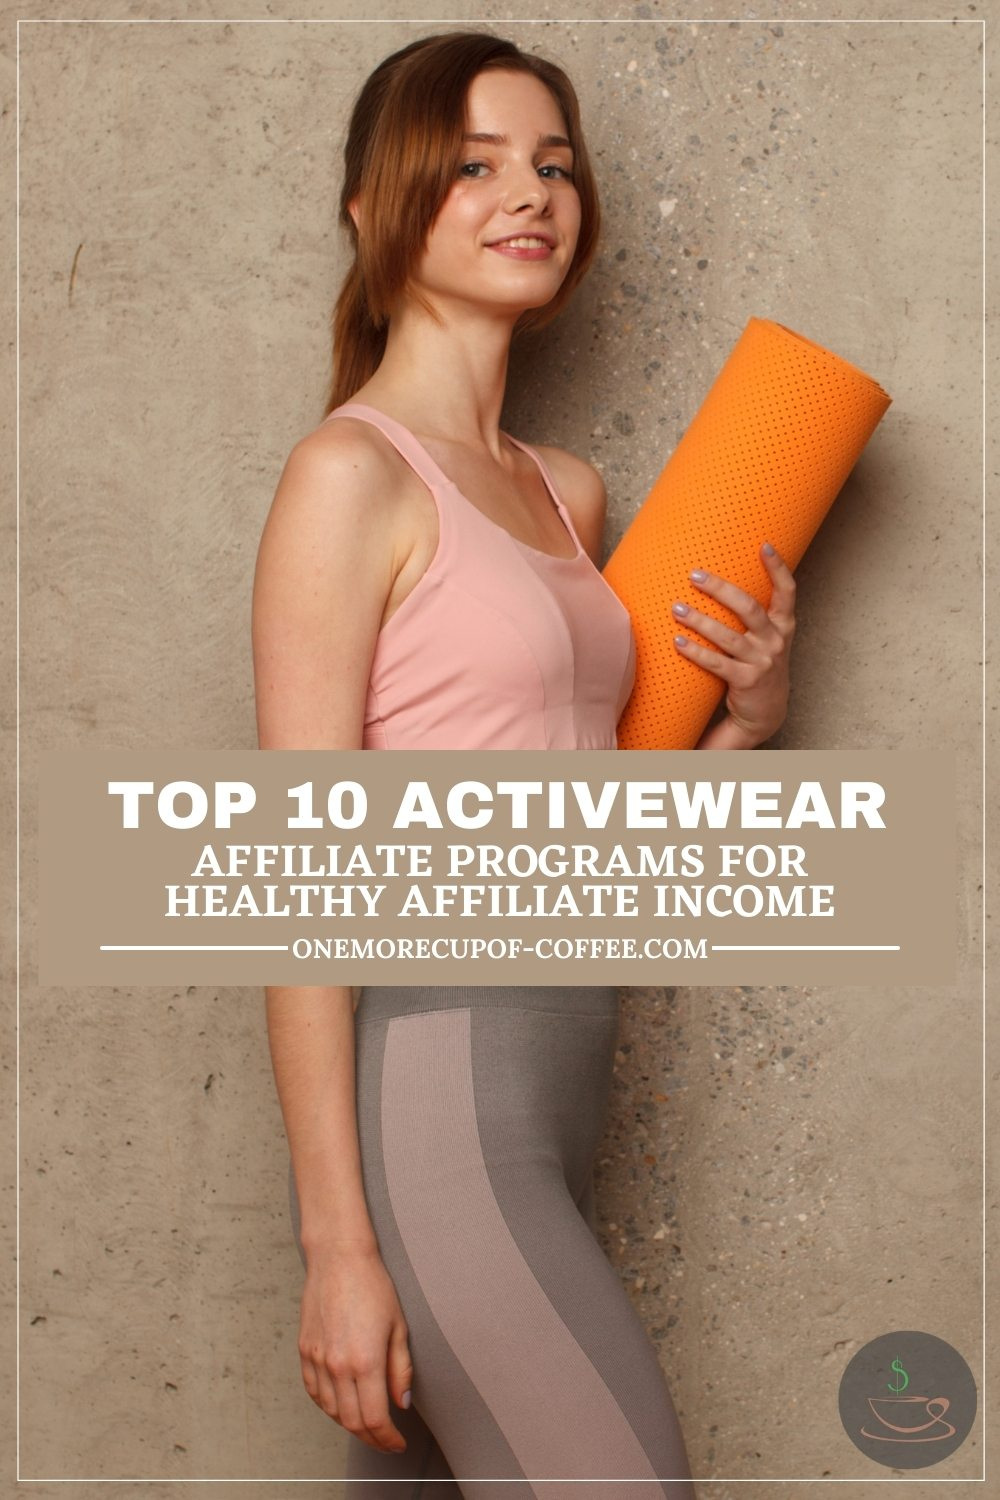 """woman in workout top and leggings holding an orange yoga mat, against a beige textured wall,; with text overlay """"Top 10 Activewear Affiliate Programs For Healthy Affiliate Income"""""""